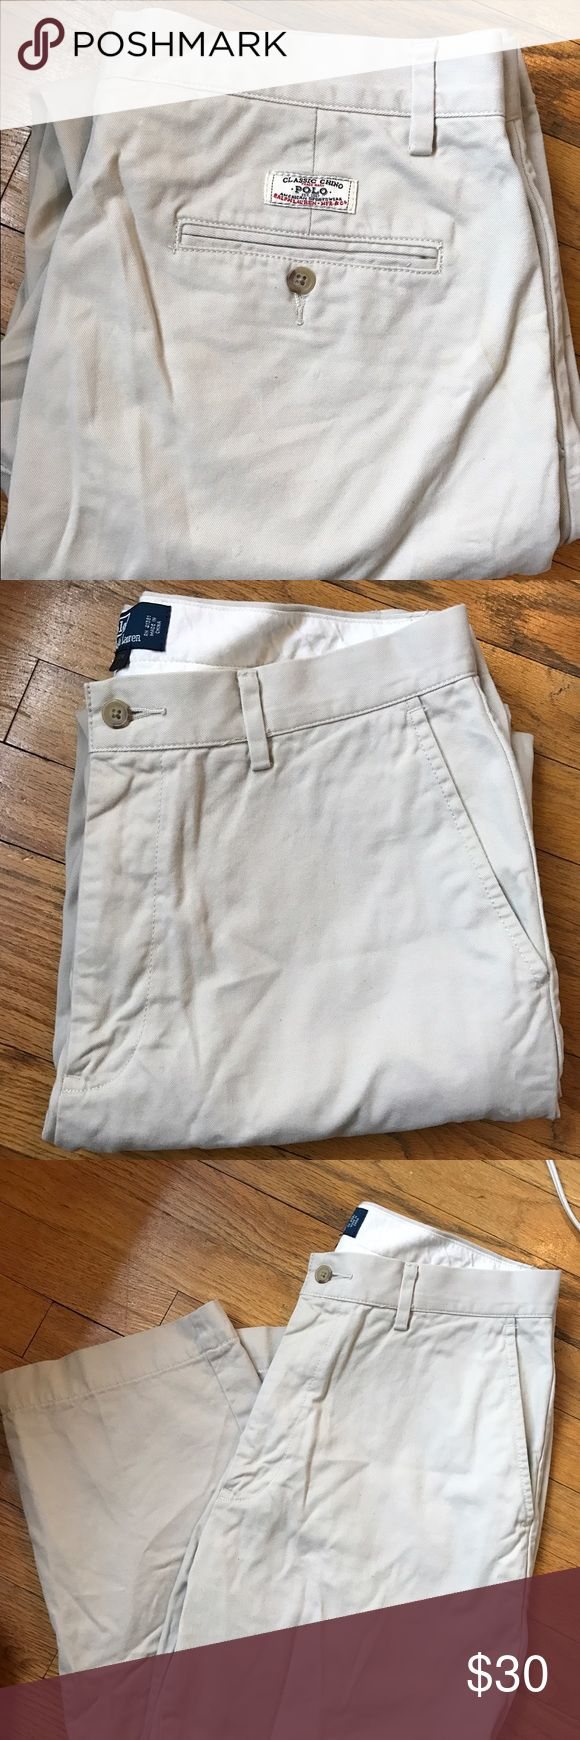 Men's Polo Ralph Lauren Classic Chinos Men's Polo Ralph Lauren Classic Chinos Khaki/Tan Color Size 33W 30L Polo by Ralph Lauren Pants Chinos & Khakis